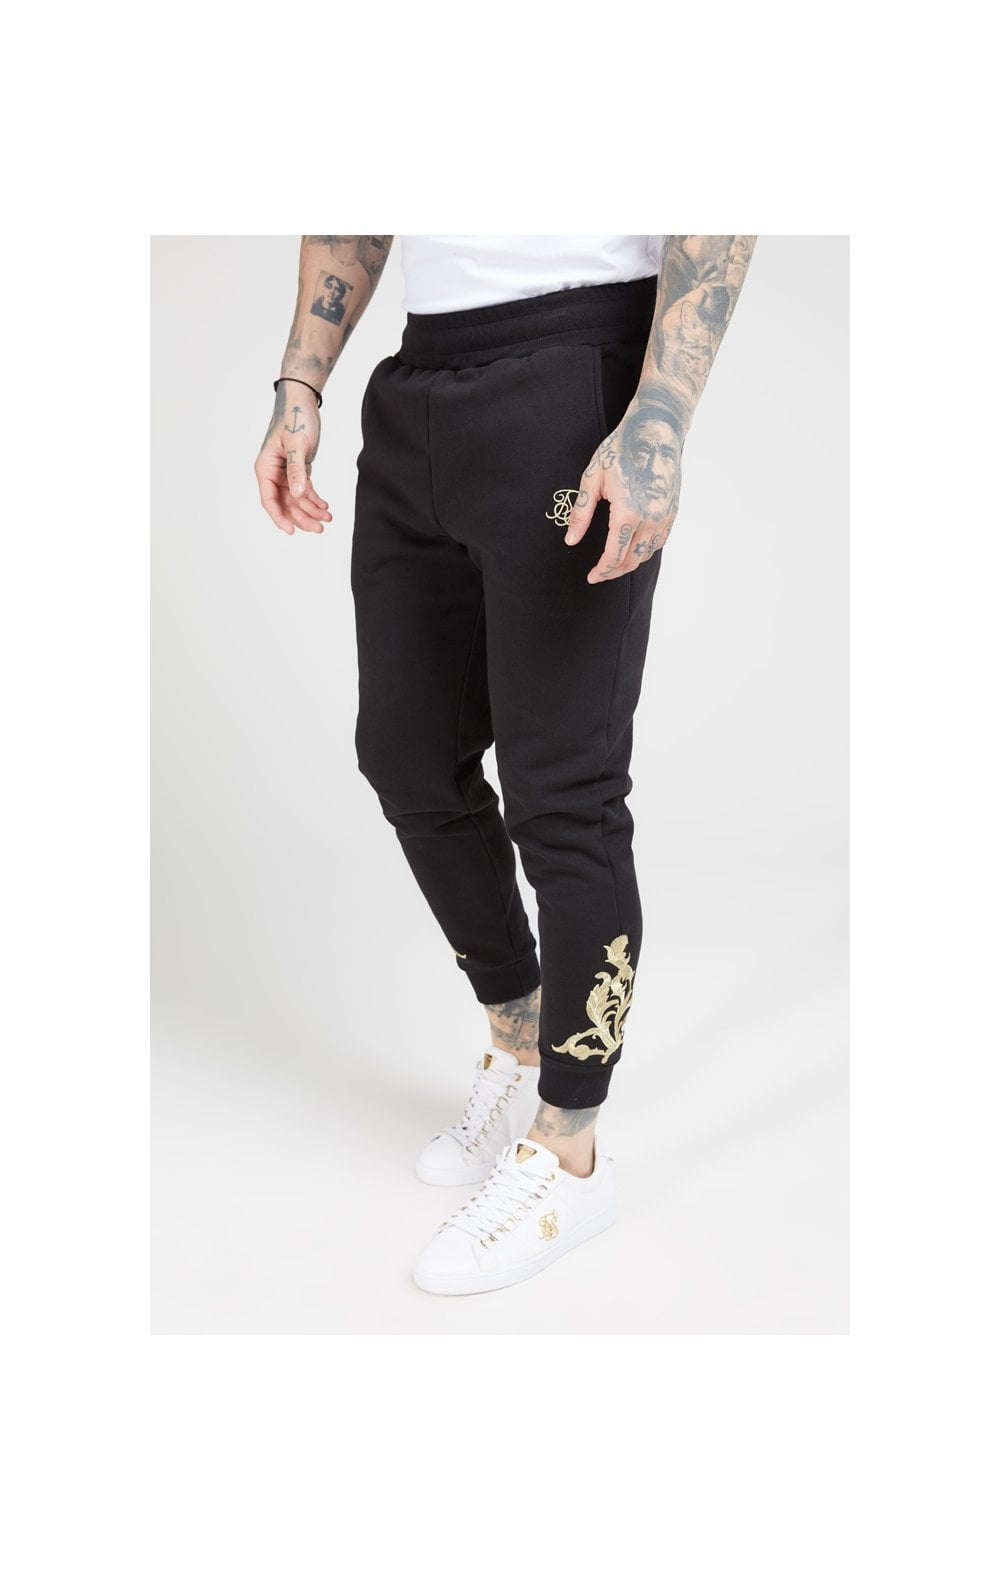 SikSilk Fitted Joggers – Jet Black & Gold